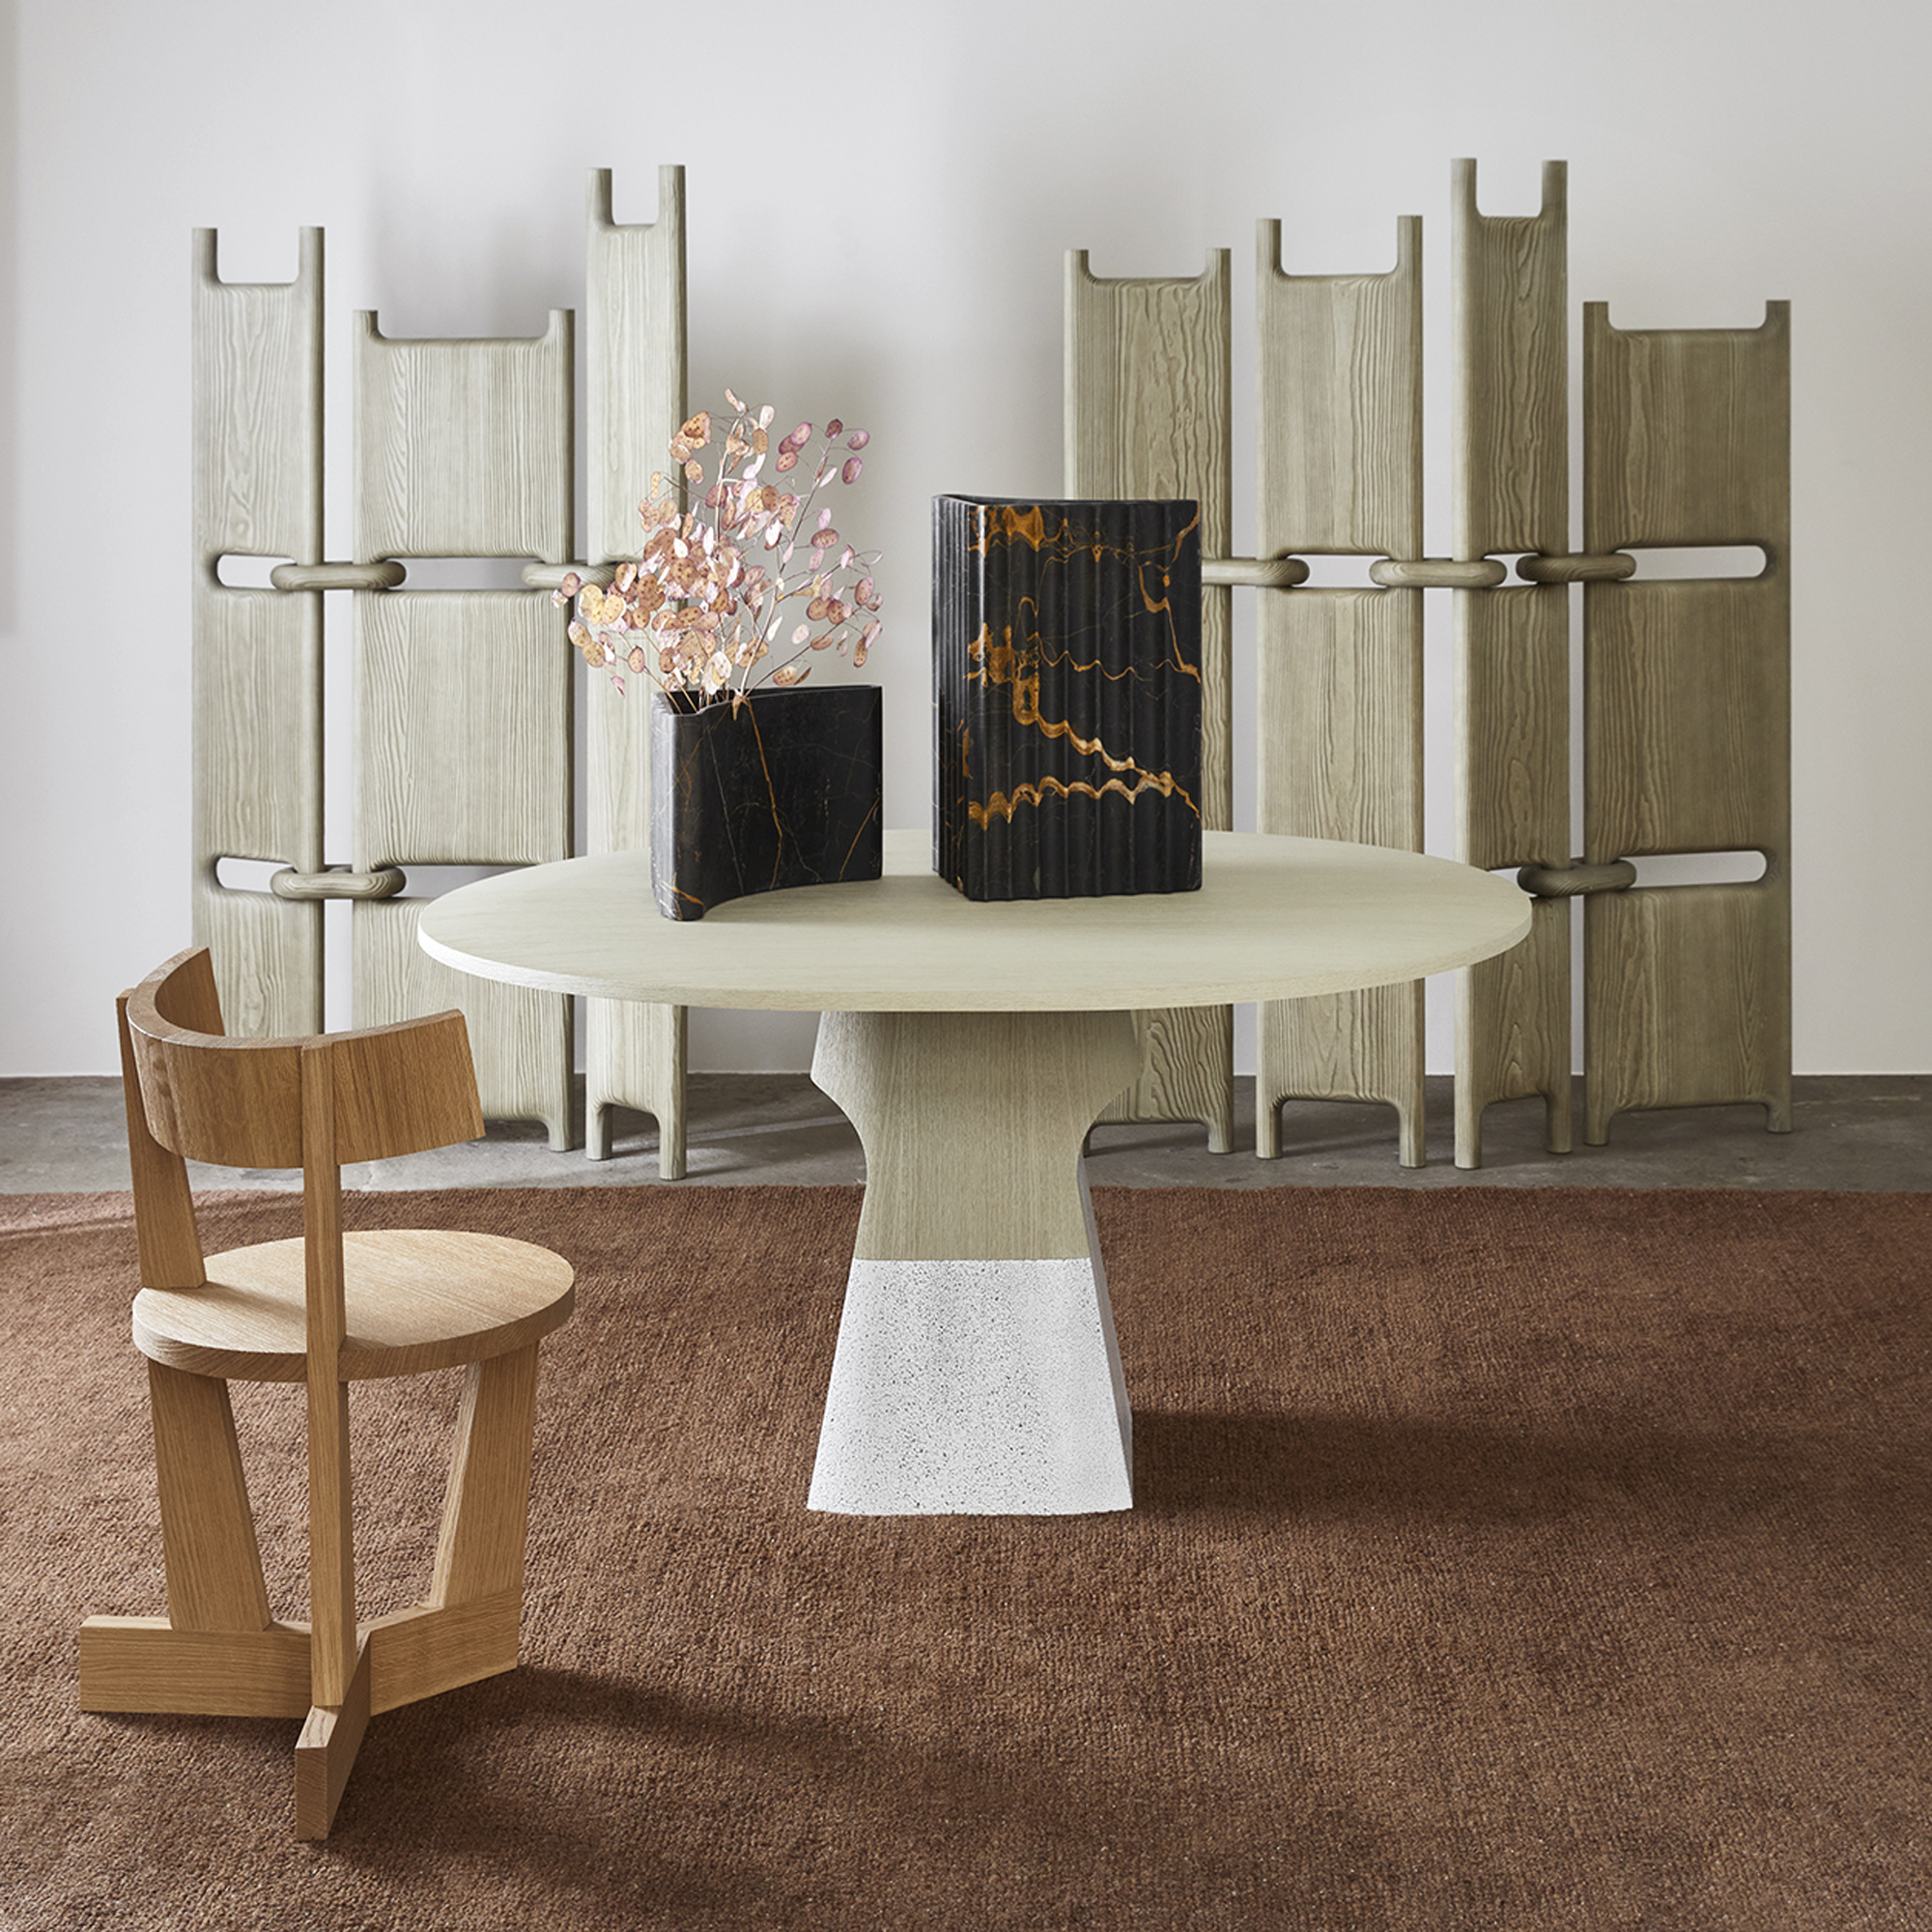 Delcourt-Collection-ISA-table-ENZ-chair